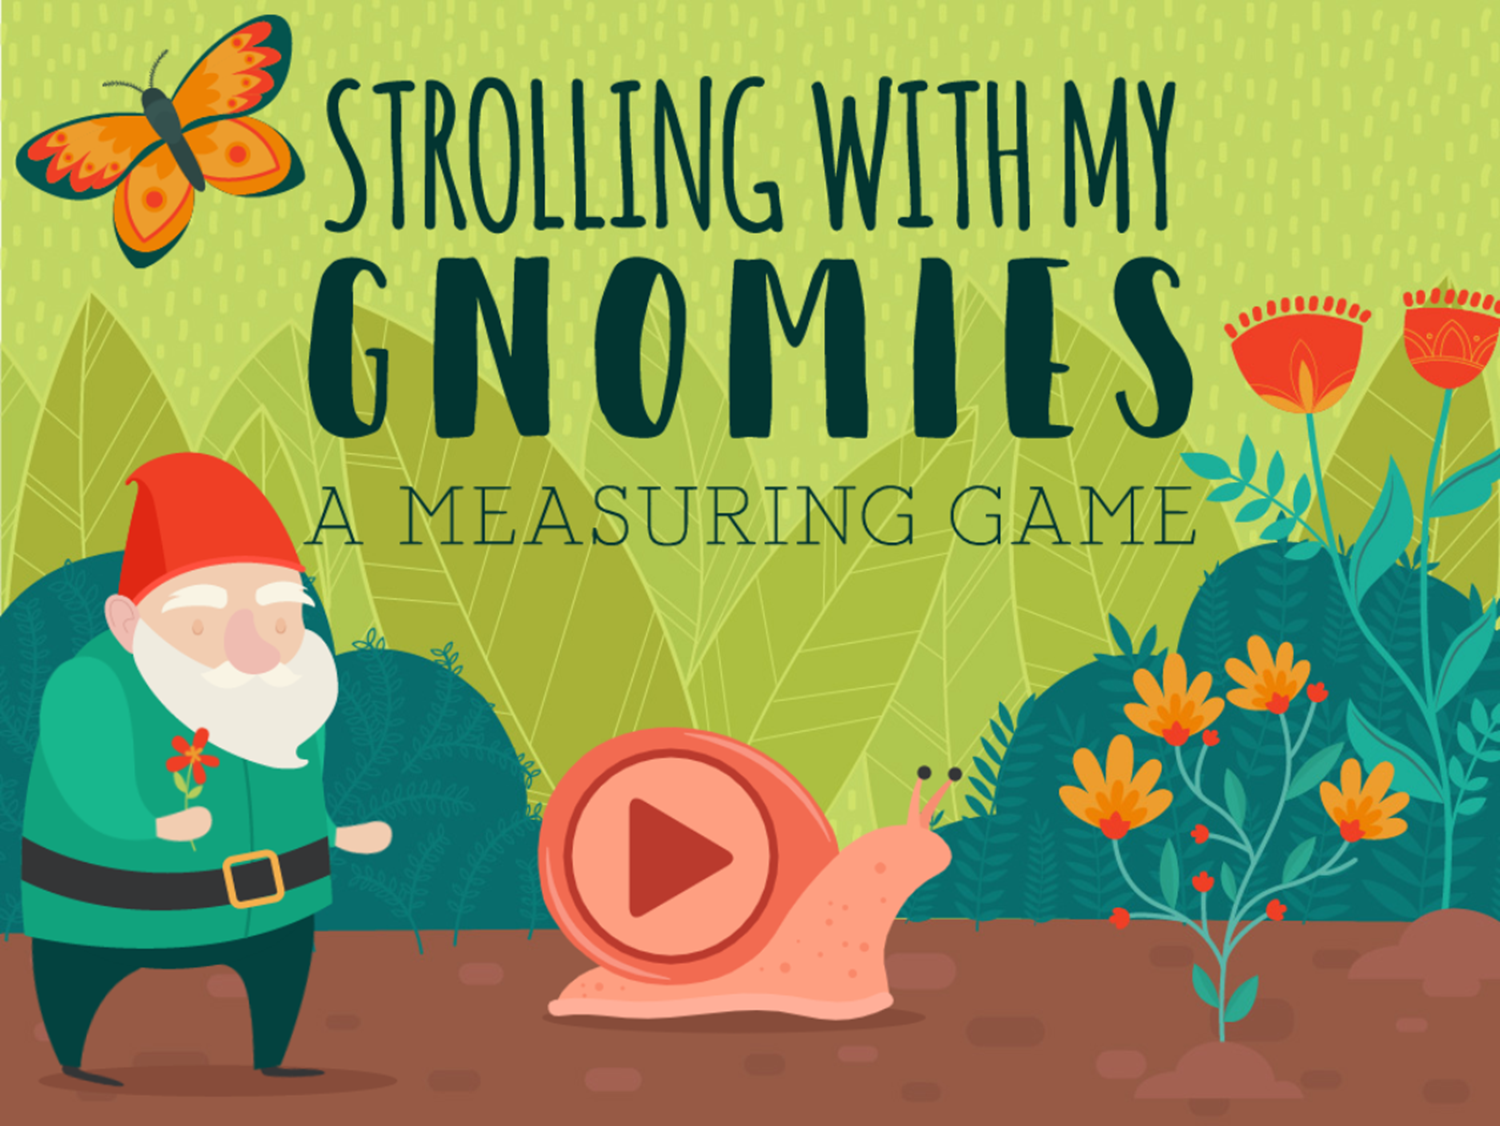 Strolling With My Gnomies a Measurement Game Welcome Screen Screenshot.